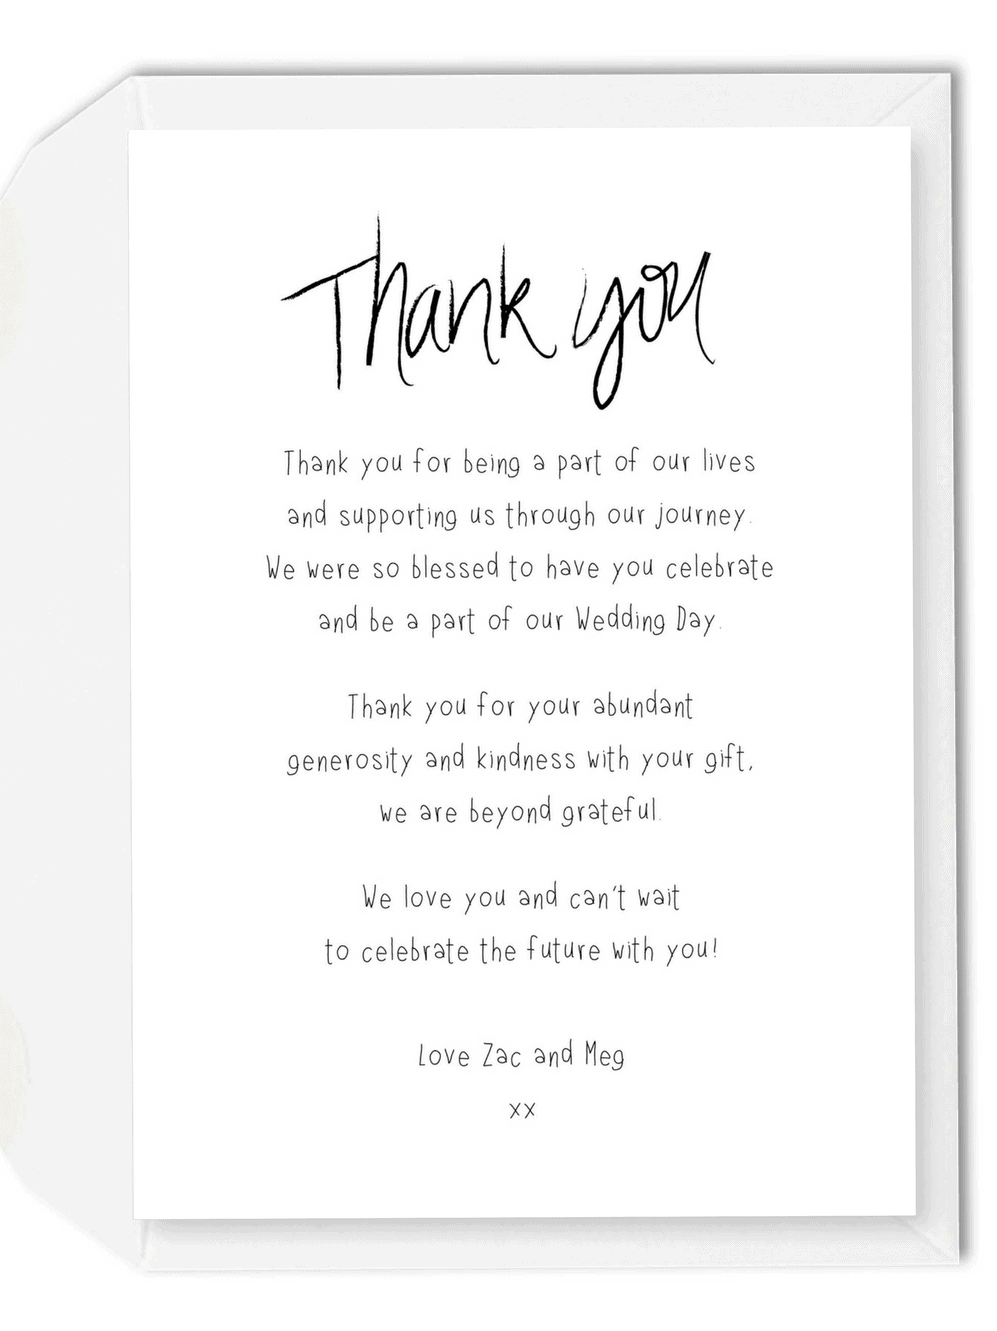 5 wording ideas for your wedding thank you cards for the love of wedding thank you card wording ideas 2 junglespirit Image collections